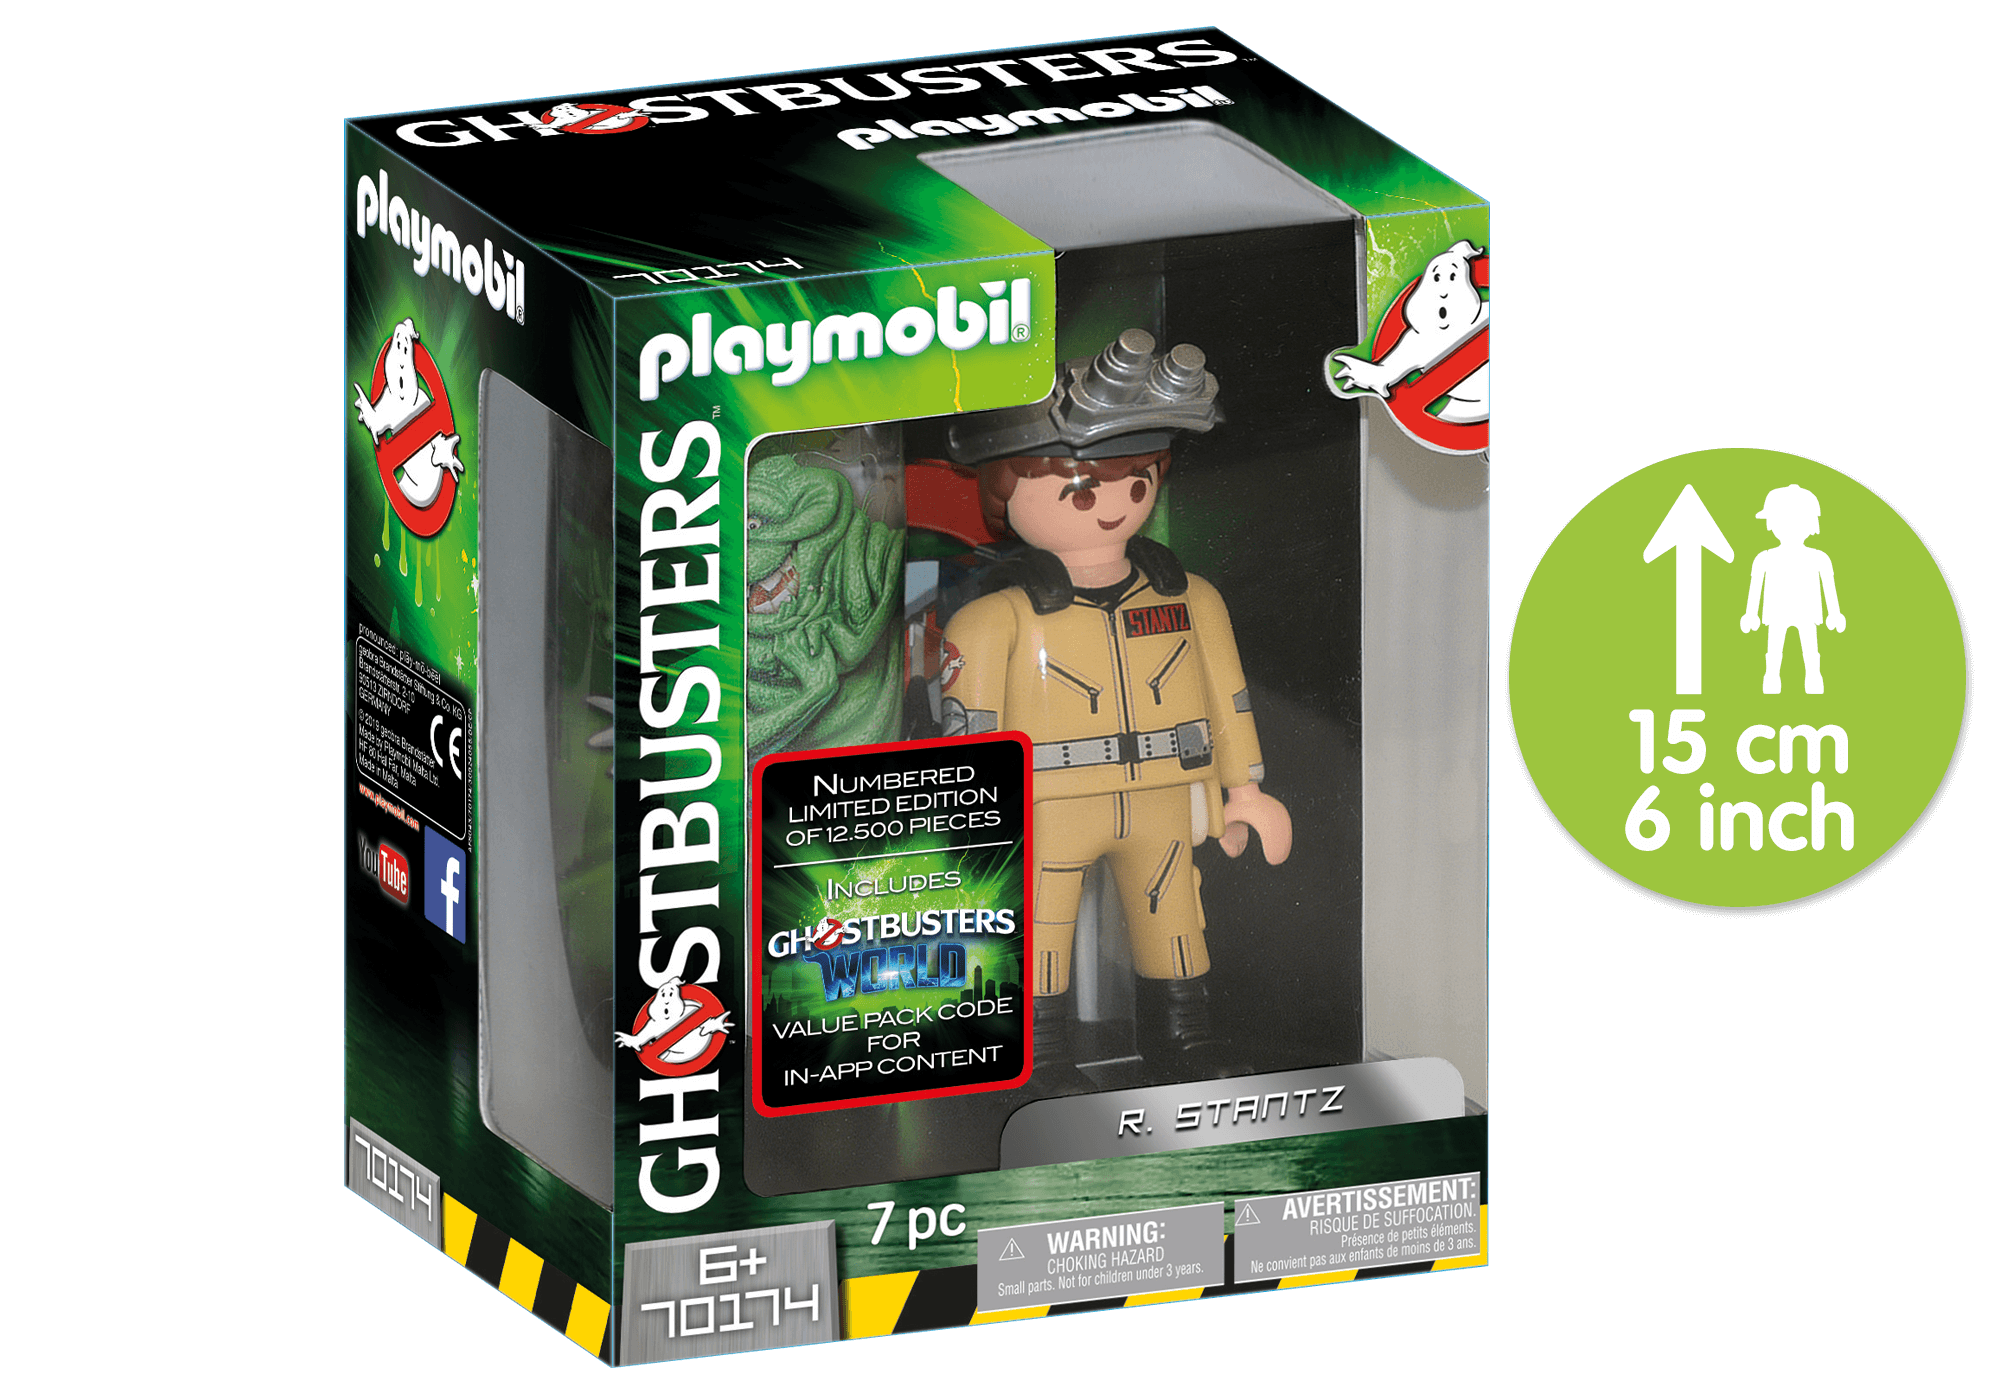 http://media.playmobil.com/i/playmobil/70174_product_detail/Ghostbusters™ Figura Coleccionable R. Stantz